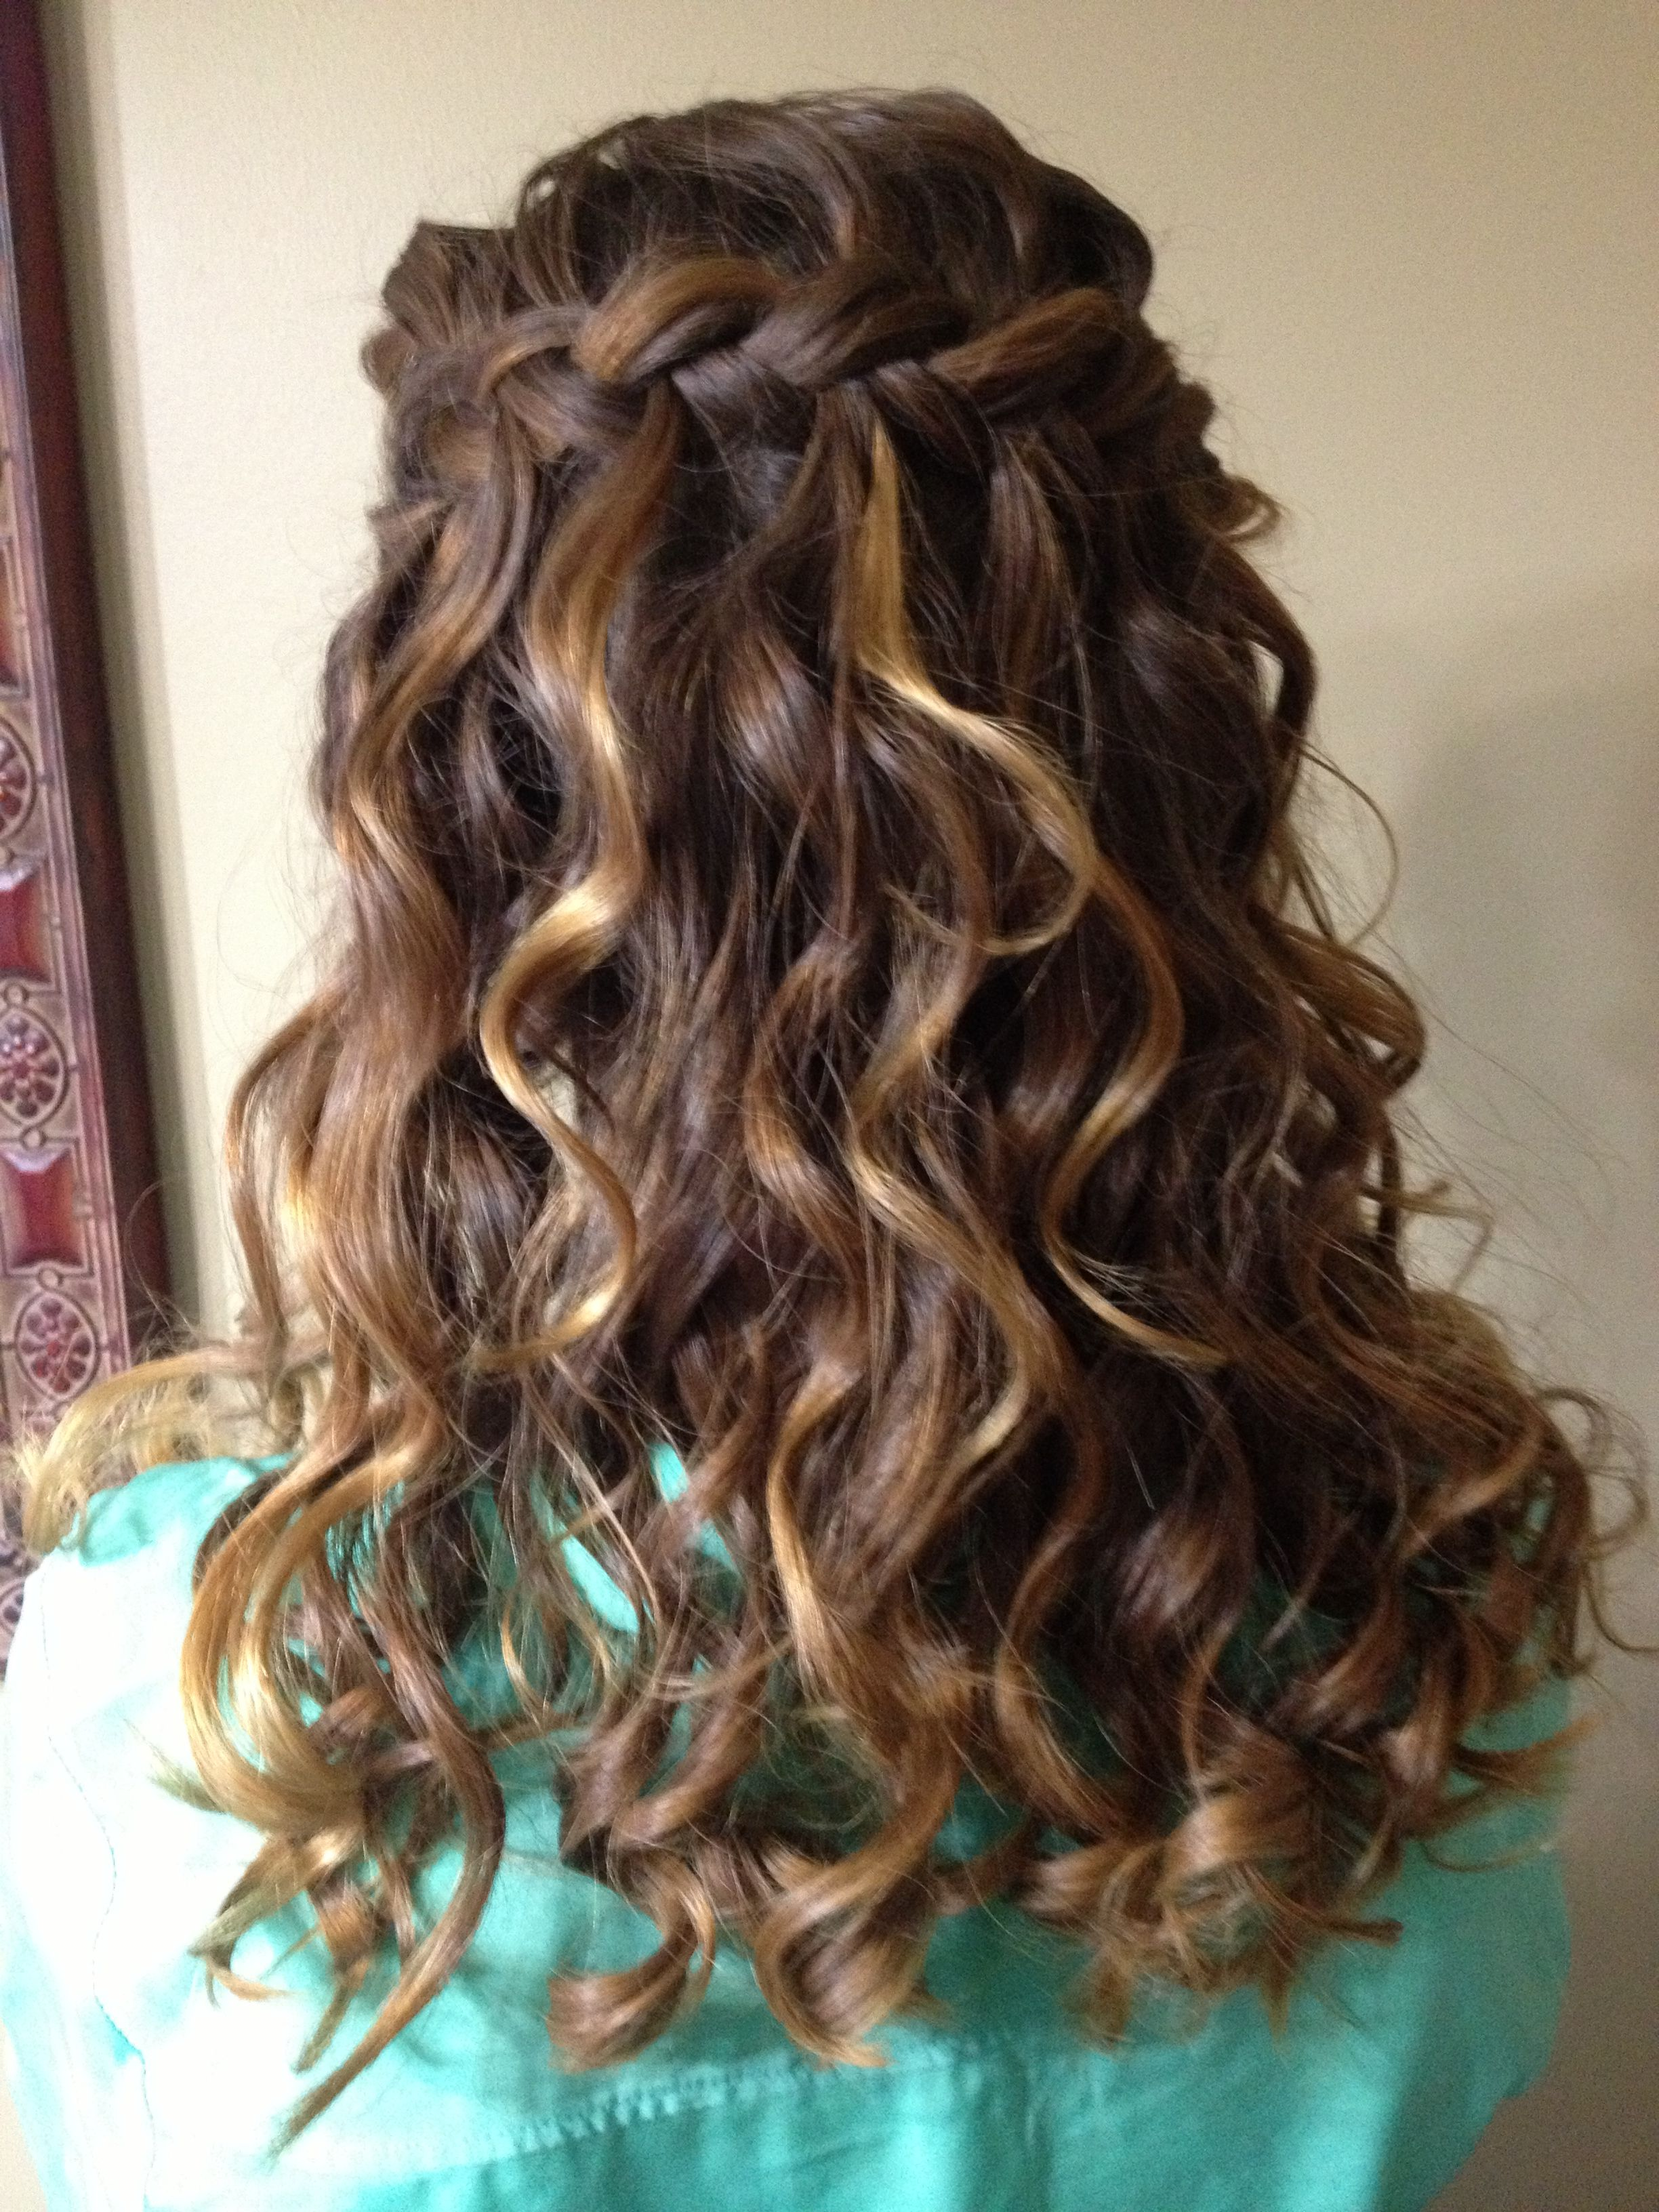 winter formal hair | beauty tips | hair styles, long hair